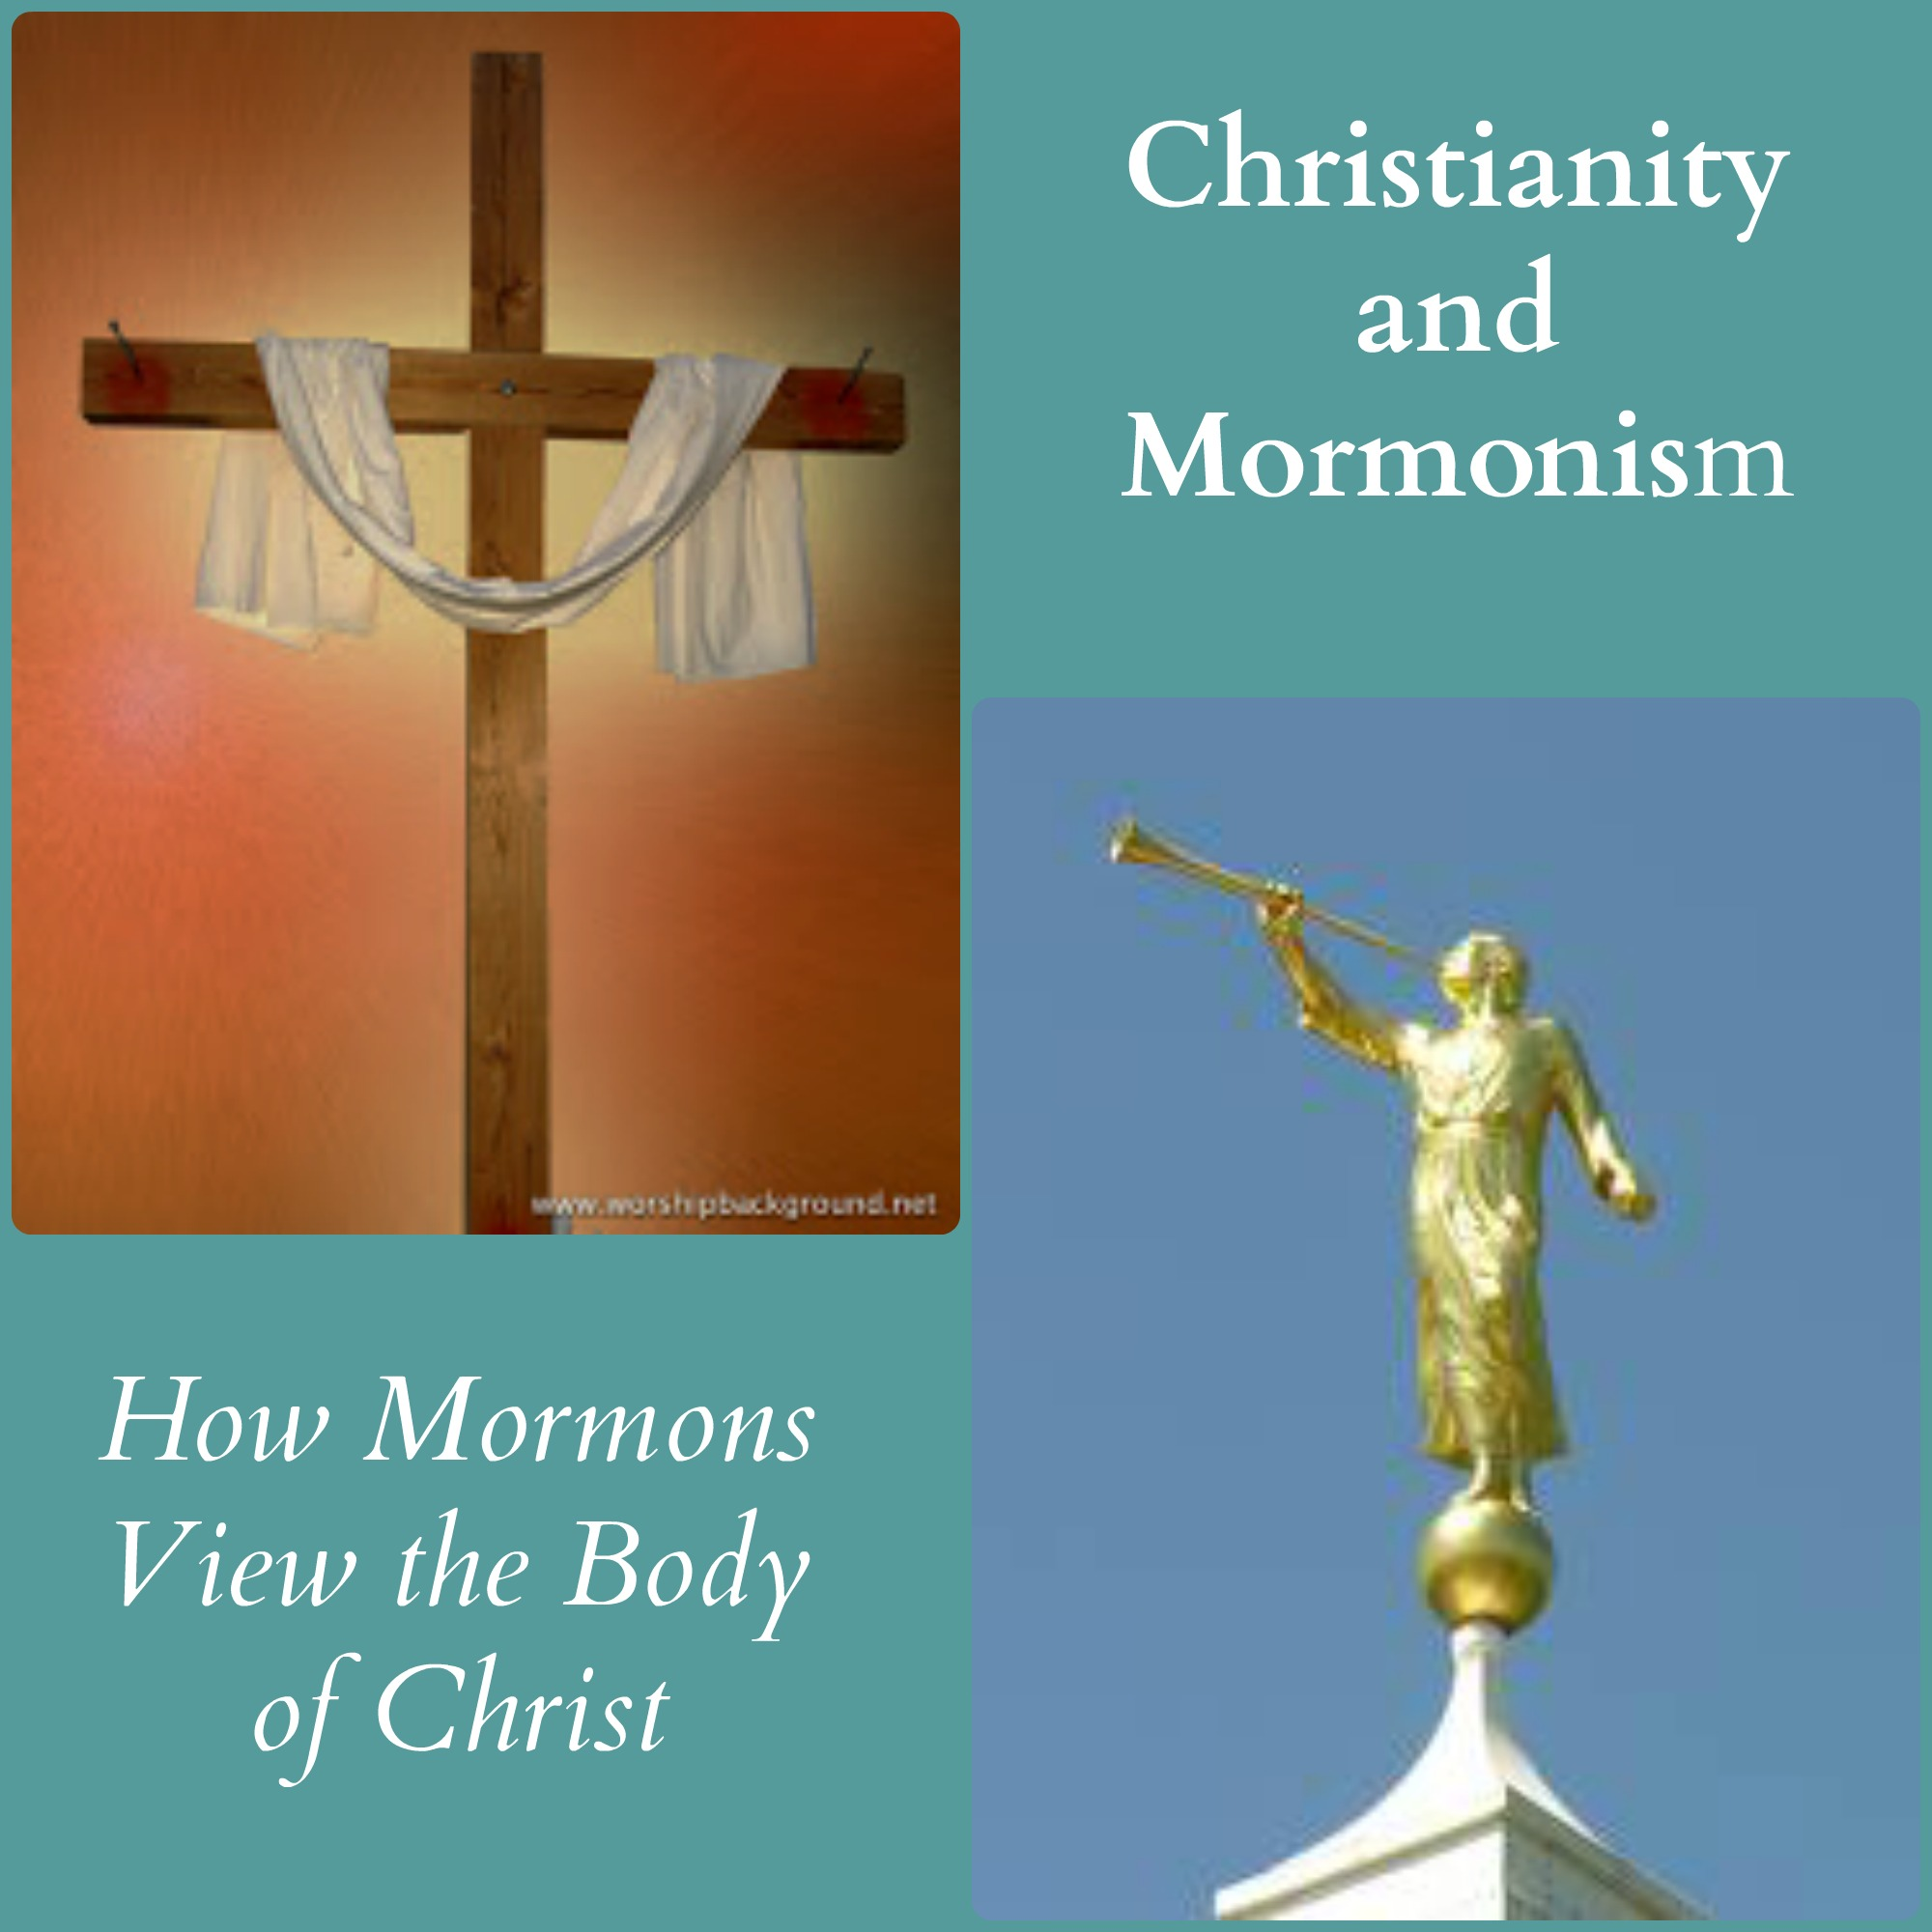 Presbyterians and Mormons